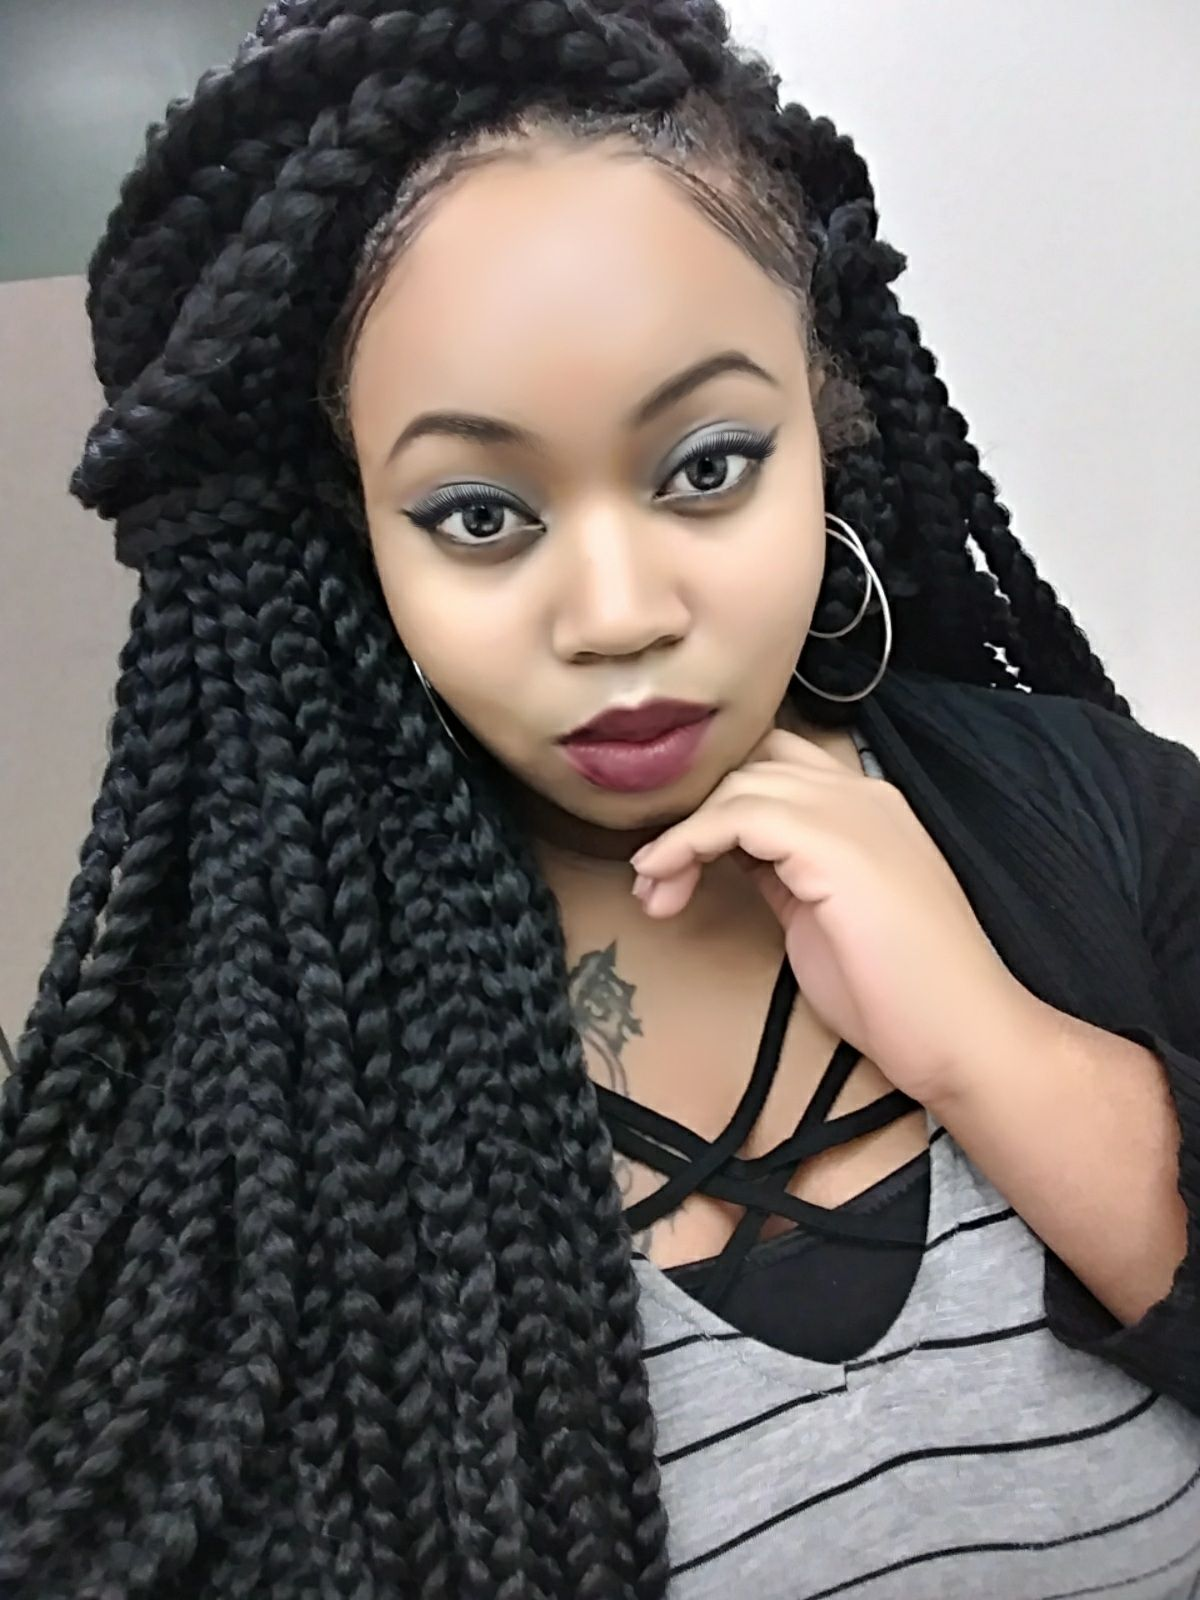 Brand HeySis Poetic Justice Braids Color 1B/ Jet Black